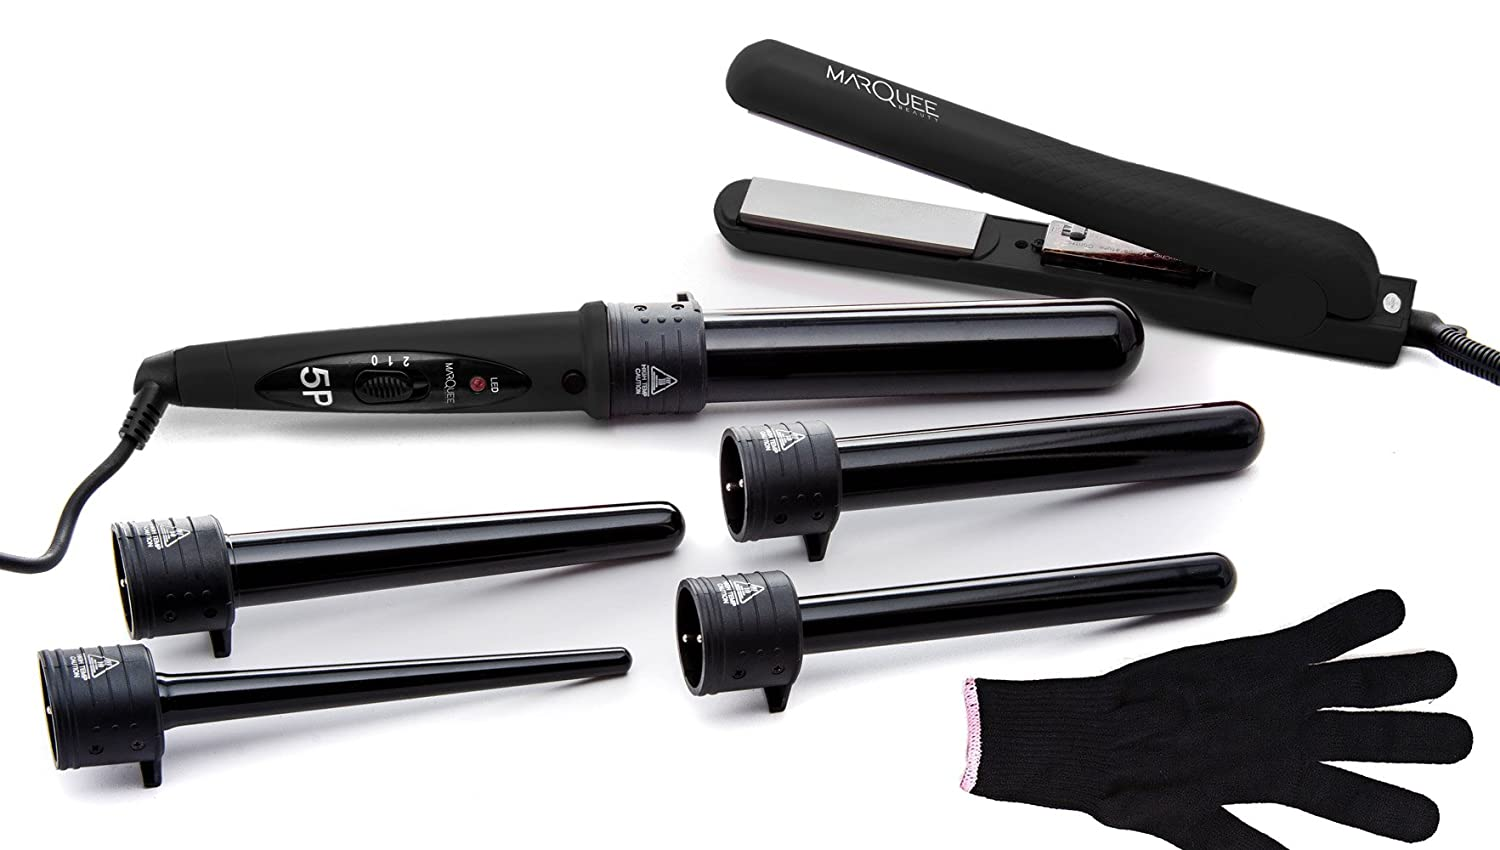 Amazon.com : Deluxe Beauty Professional 8 Piece Interchangeable Flat and Curling  Iron Set - Instant Hair Straightening Iron - Professionally Curl Your Hair  ...